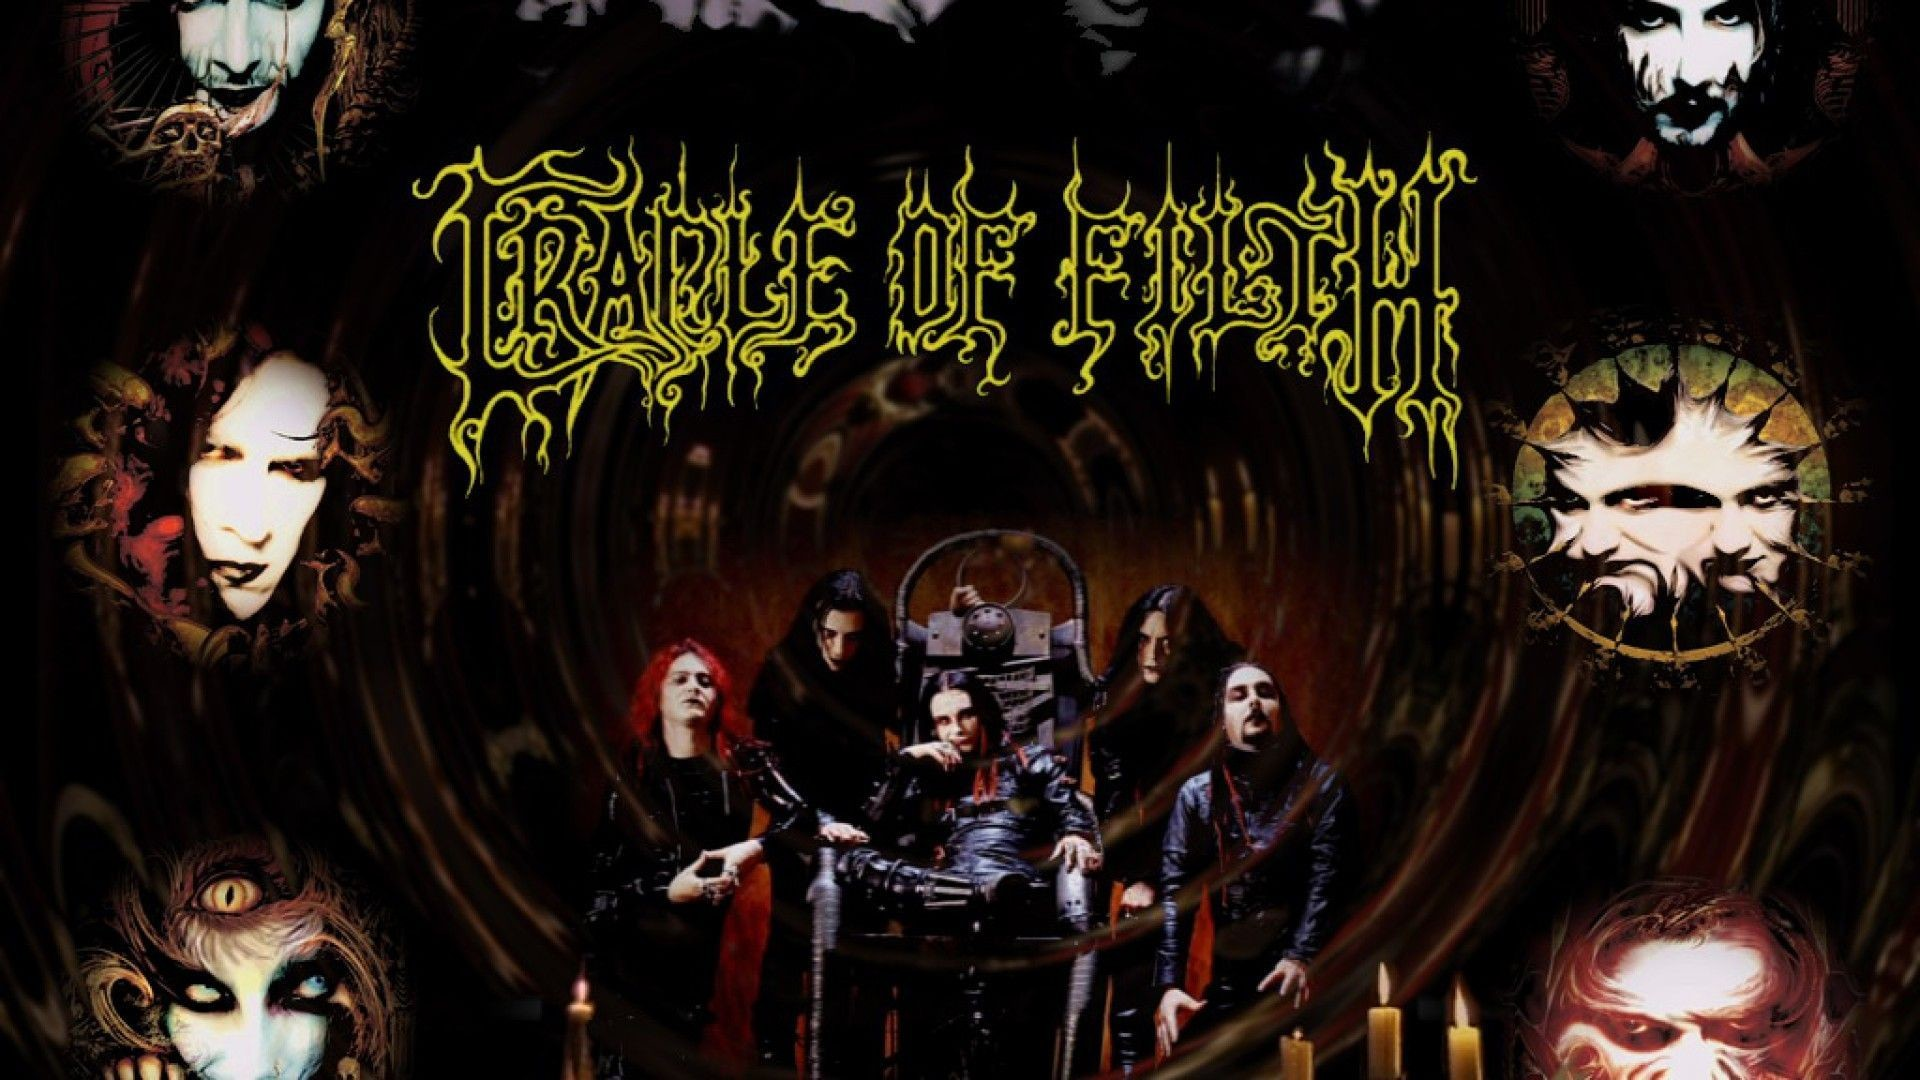 1920x1080 Cradle Of Filth Wallpapers › High Resolution Wallpapers